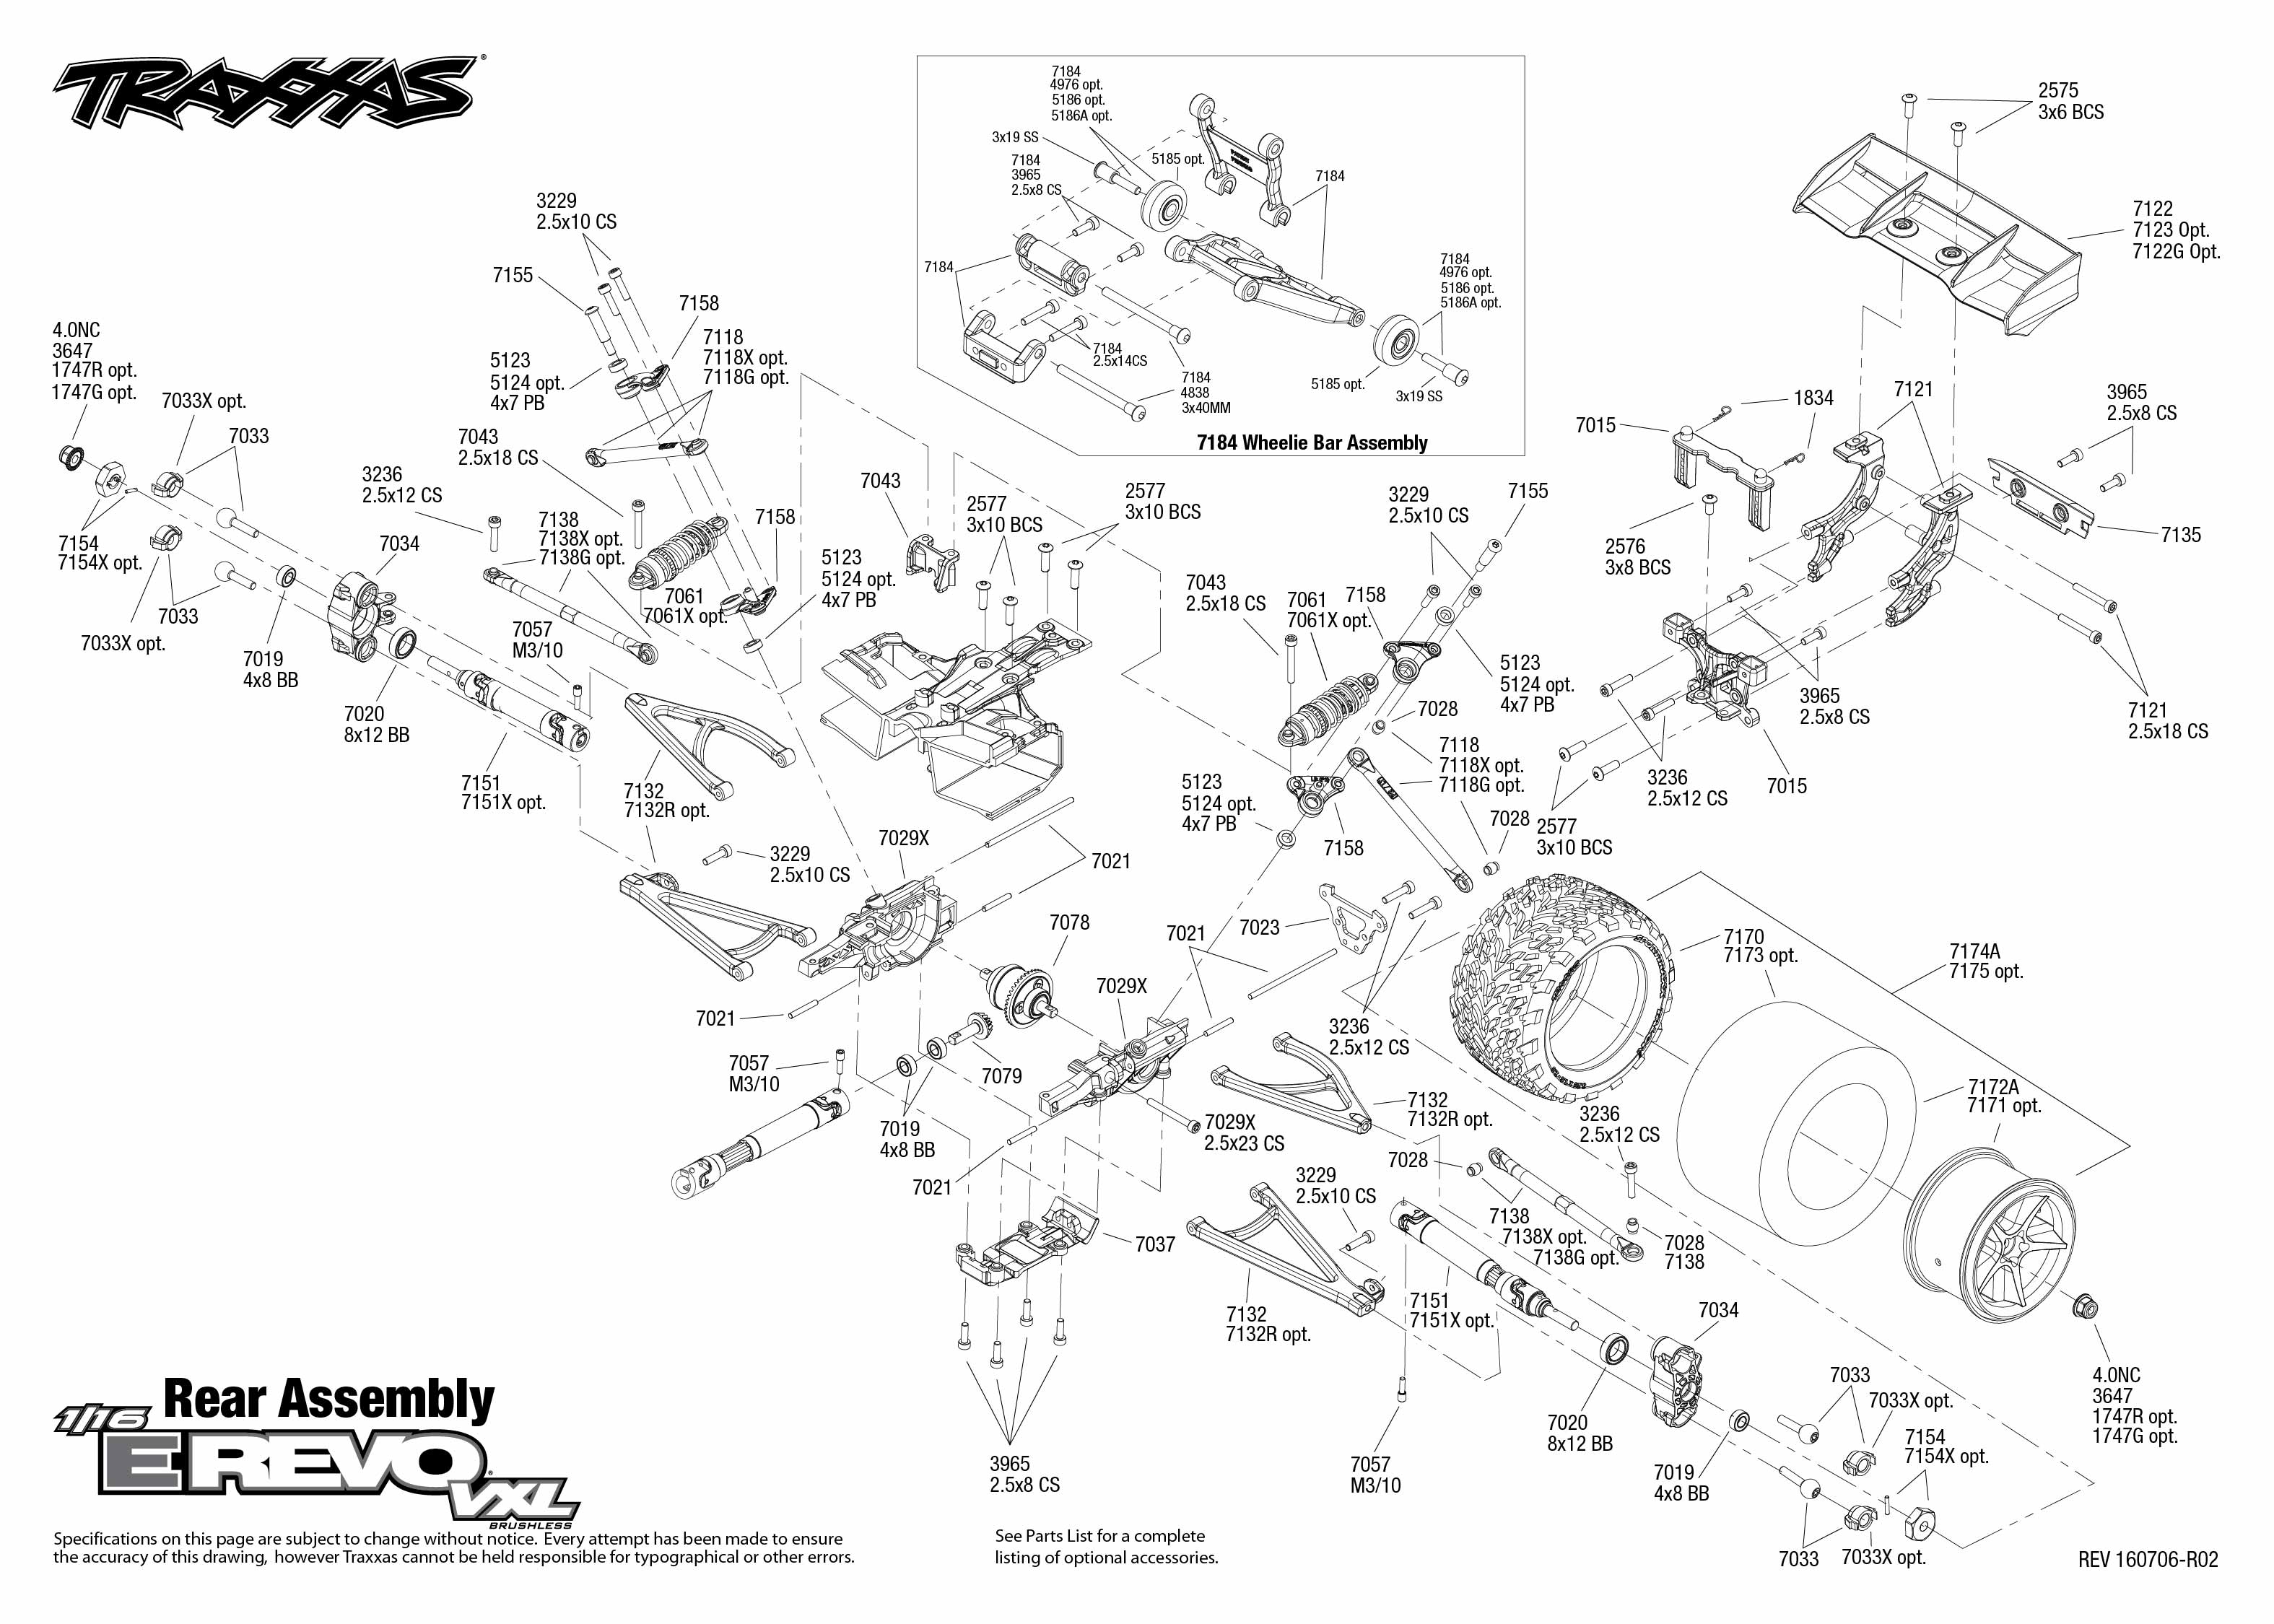 1/16 E-Revo VXL (71076-3) Rear Assembly Exploded View